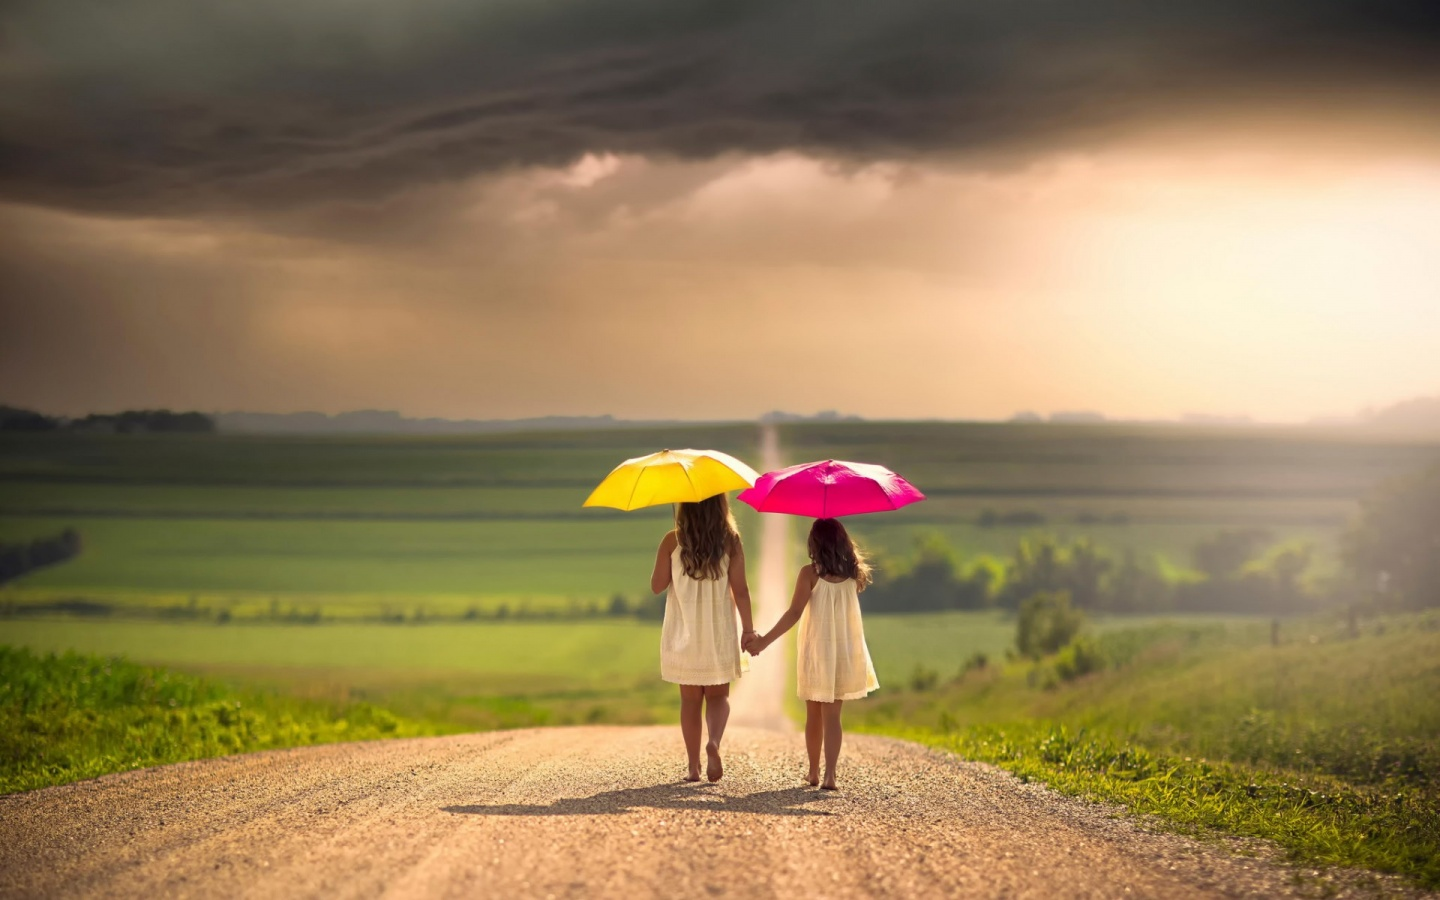 Telugu Quotes Wallpapers Two Girls With Umbrellas Wallpapers 1440x900 276184